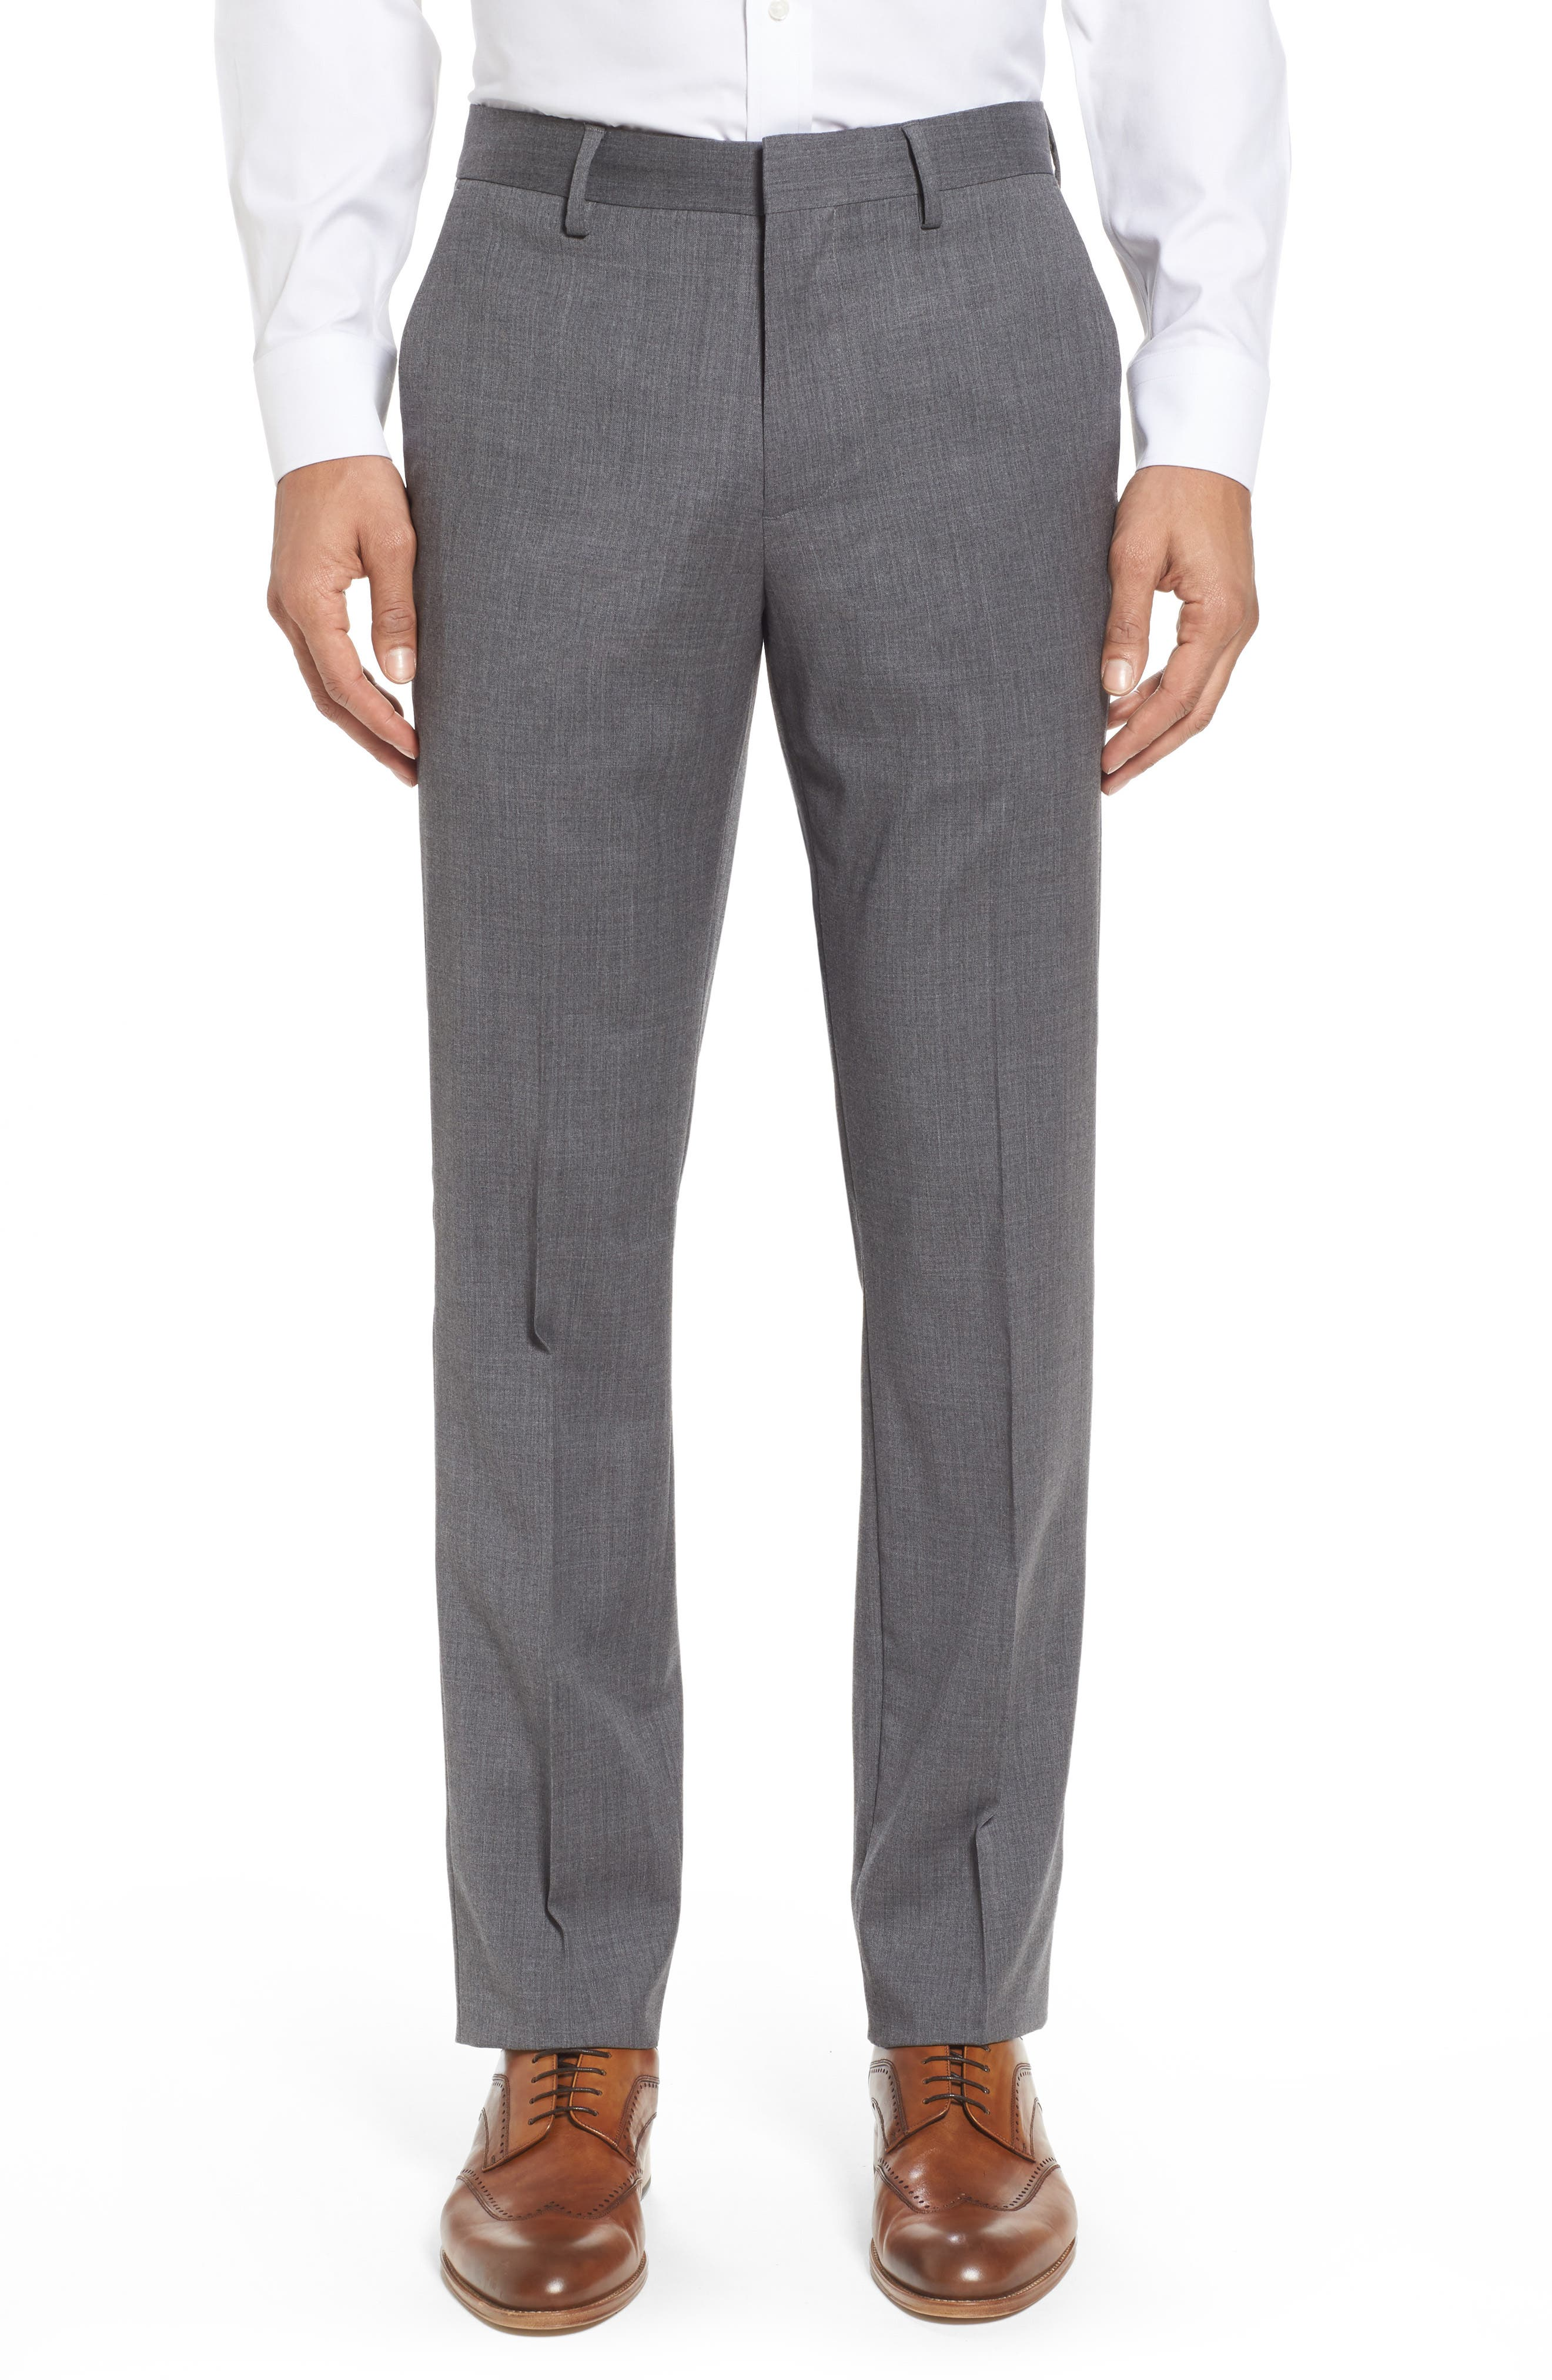 a4c3609ef2502 Men's Bonobos View All: Clothing, Shoes & Accessories | Nordstrom